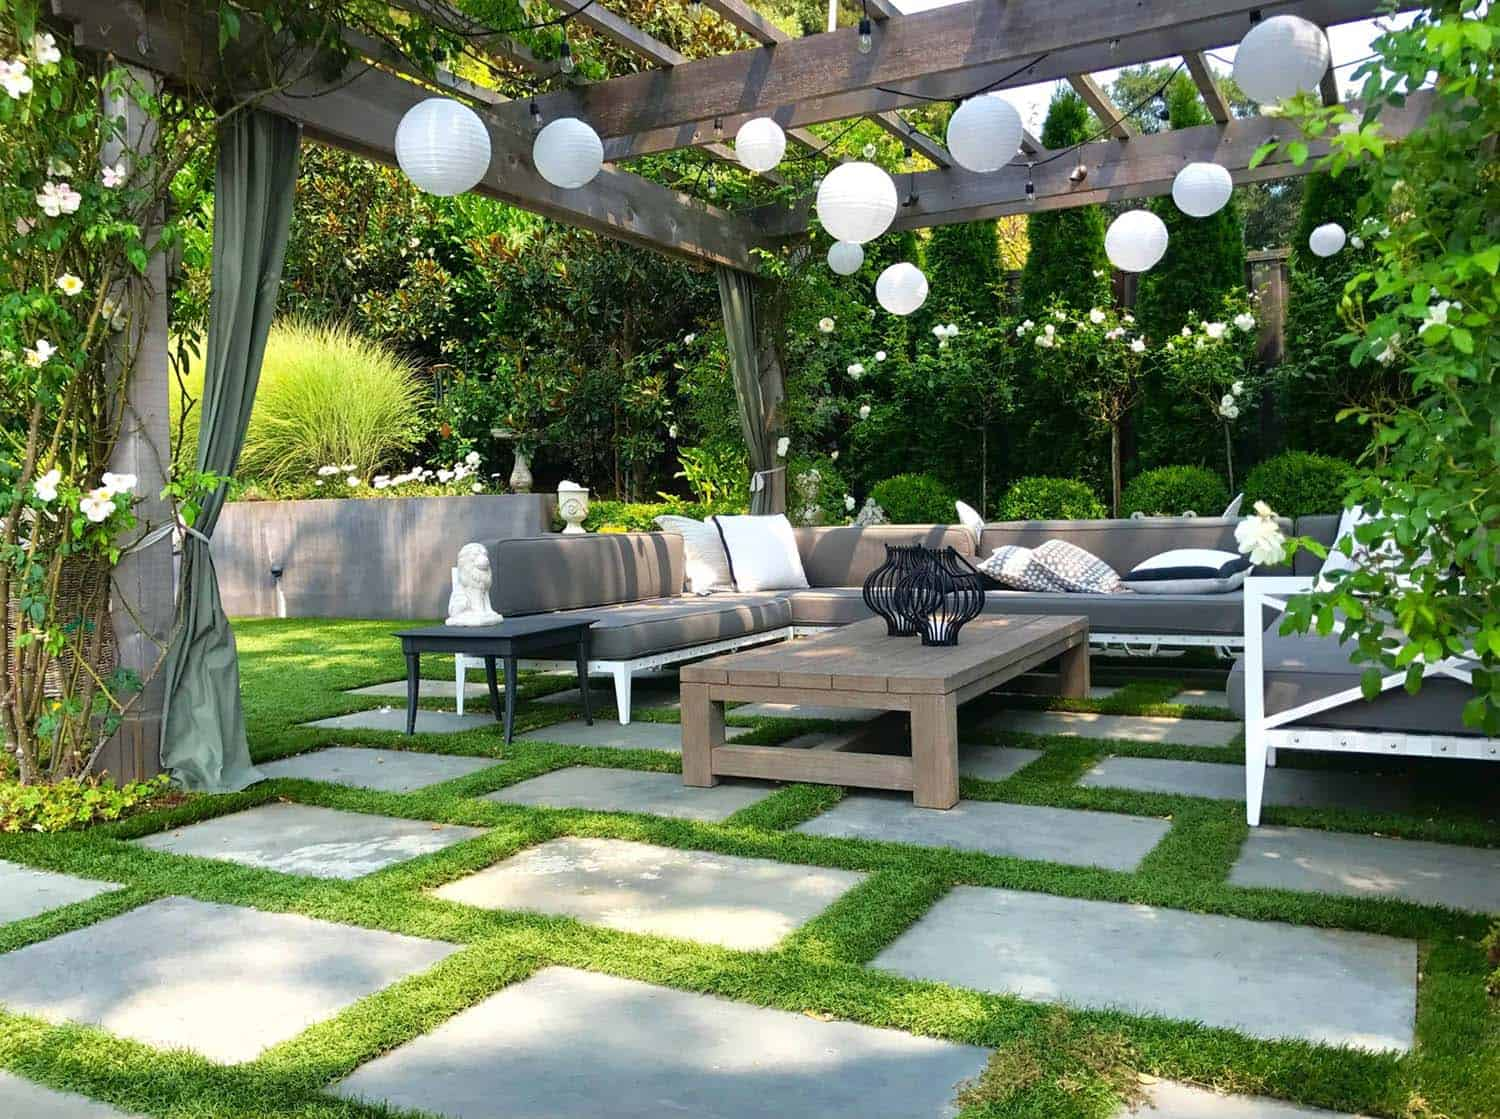 33 Fabulous Ideas For Creating Beautiful Outdoor Living Spaces on Backyard Outdoor Living Spaces id=96602